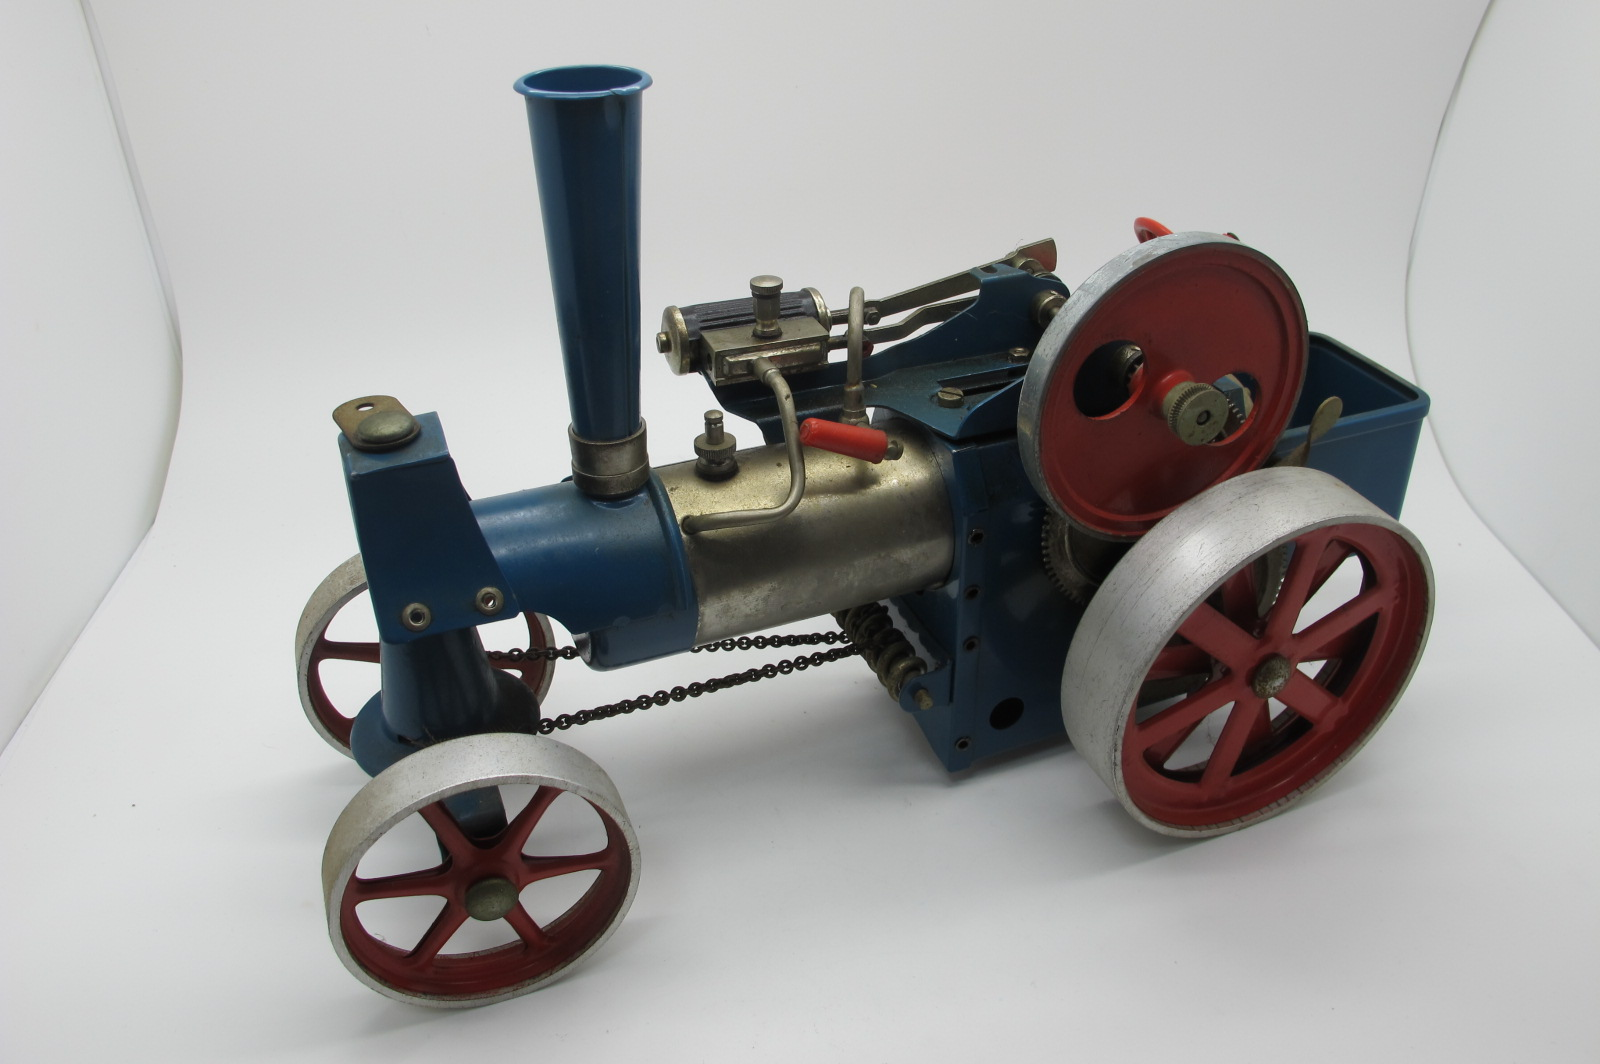 A Wilesco Live Steam Traction Engine, appears complete, including burner, has been steamed,